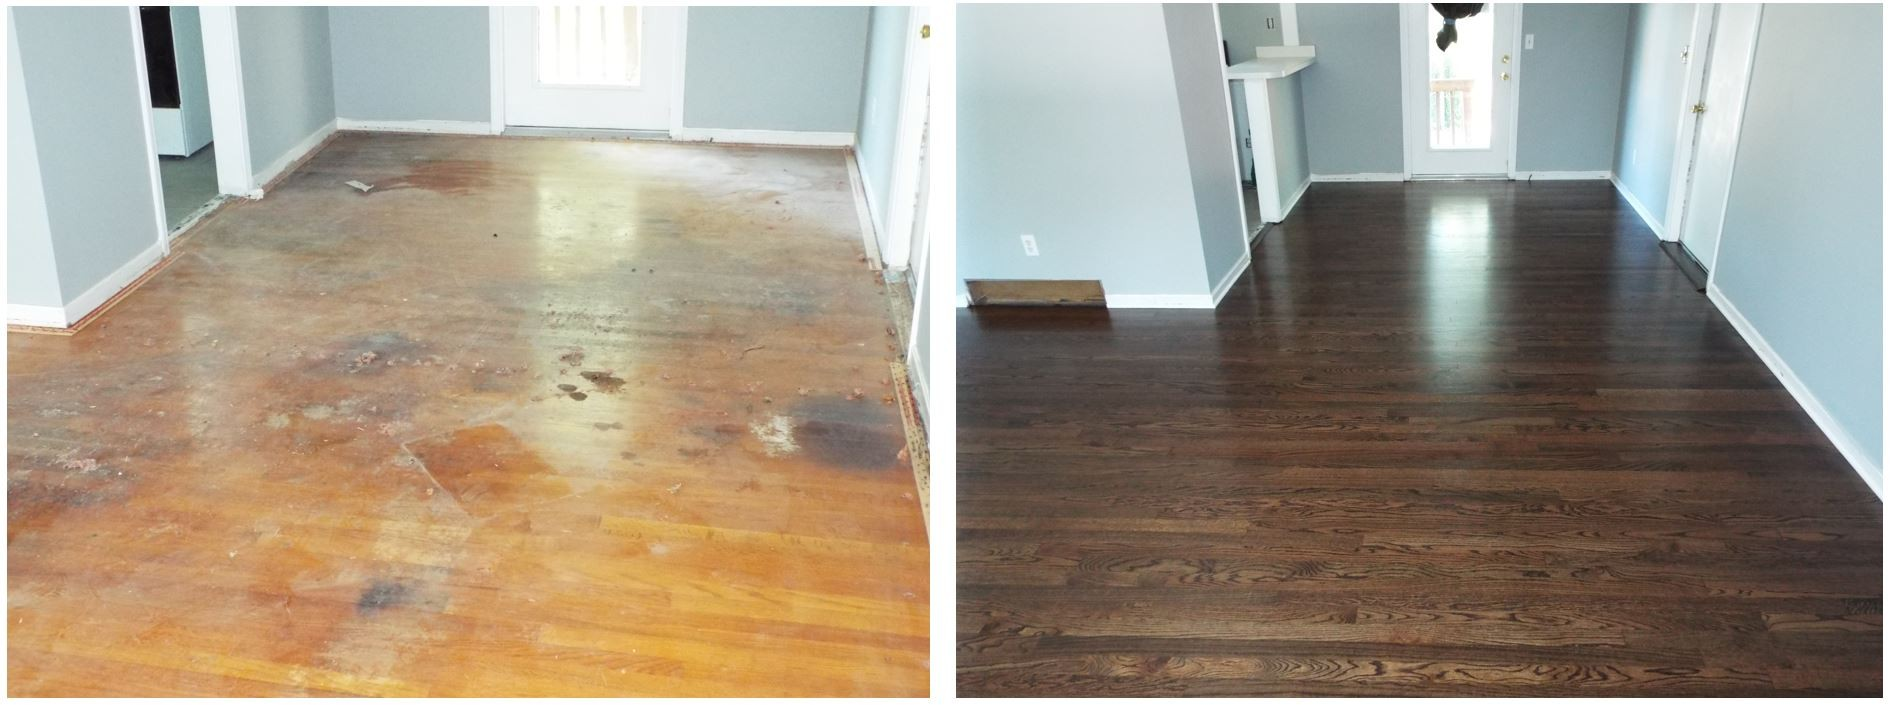 Refinished Hardwood Floors Before And After